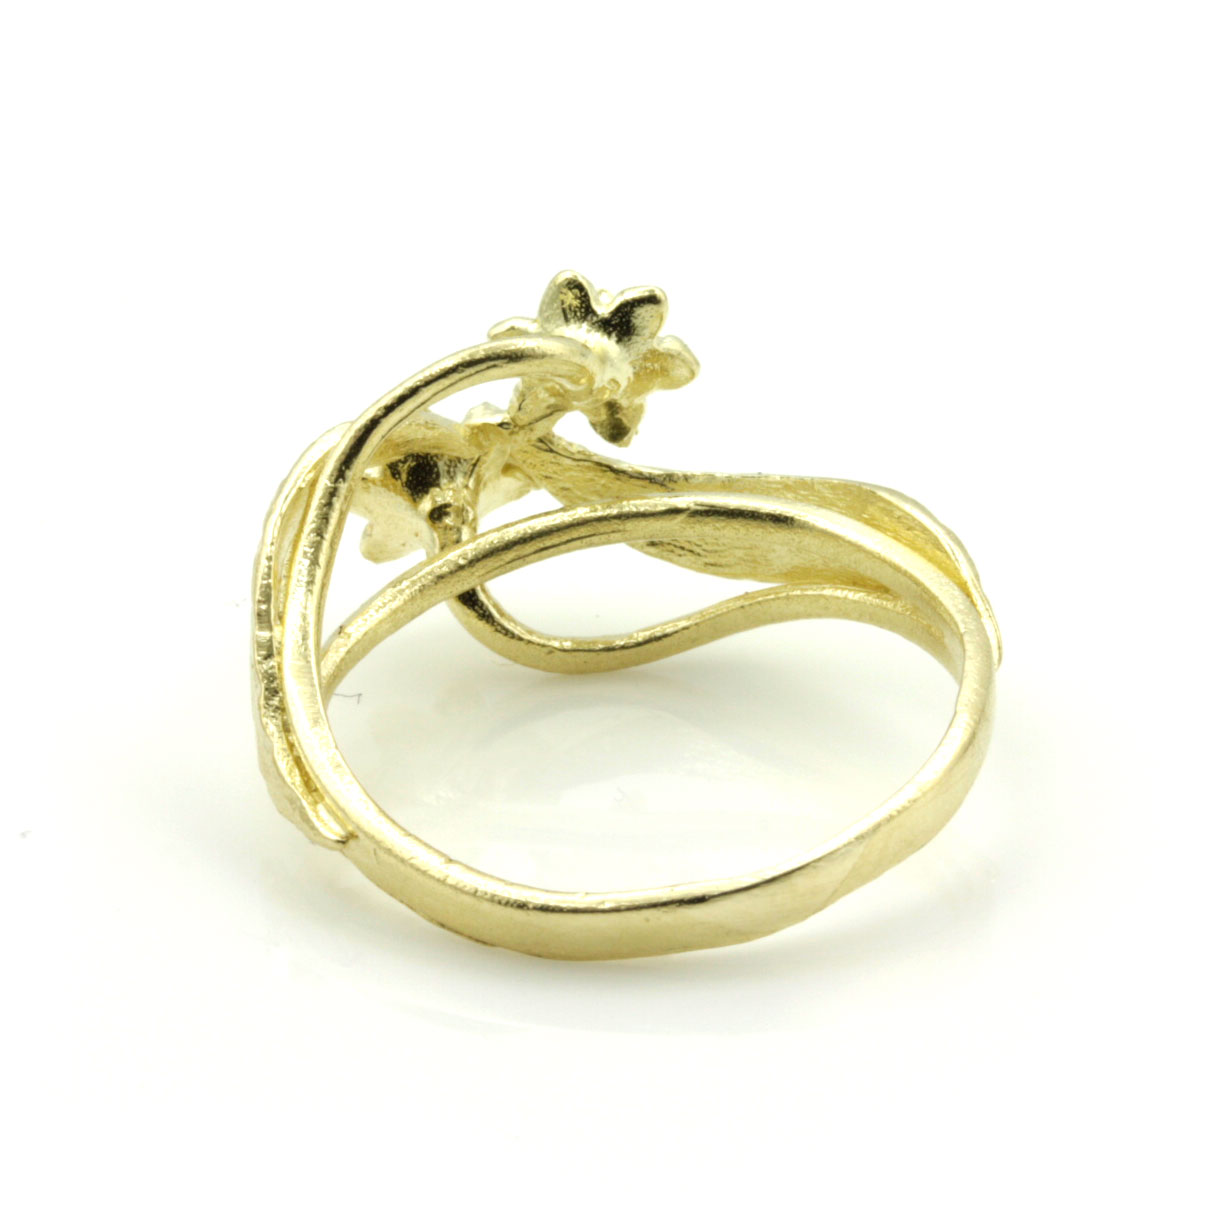 Welsh Wedding Ring: 9ct Yellow Gold Welsh Design Ring With Daffodil Flower